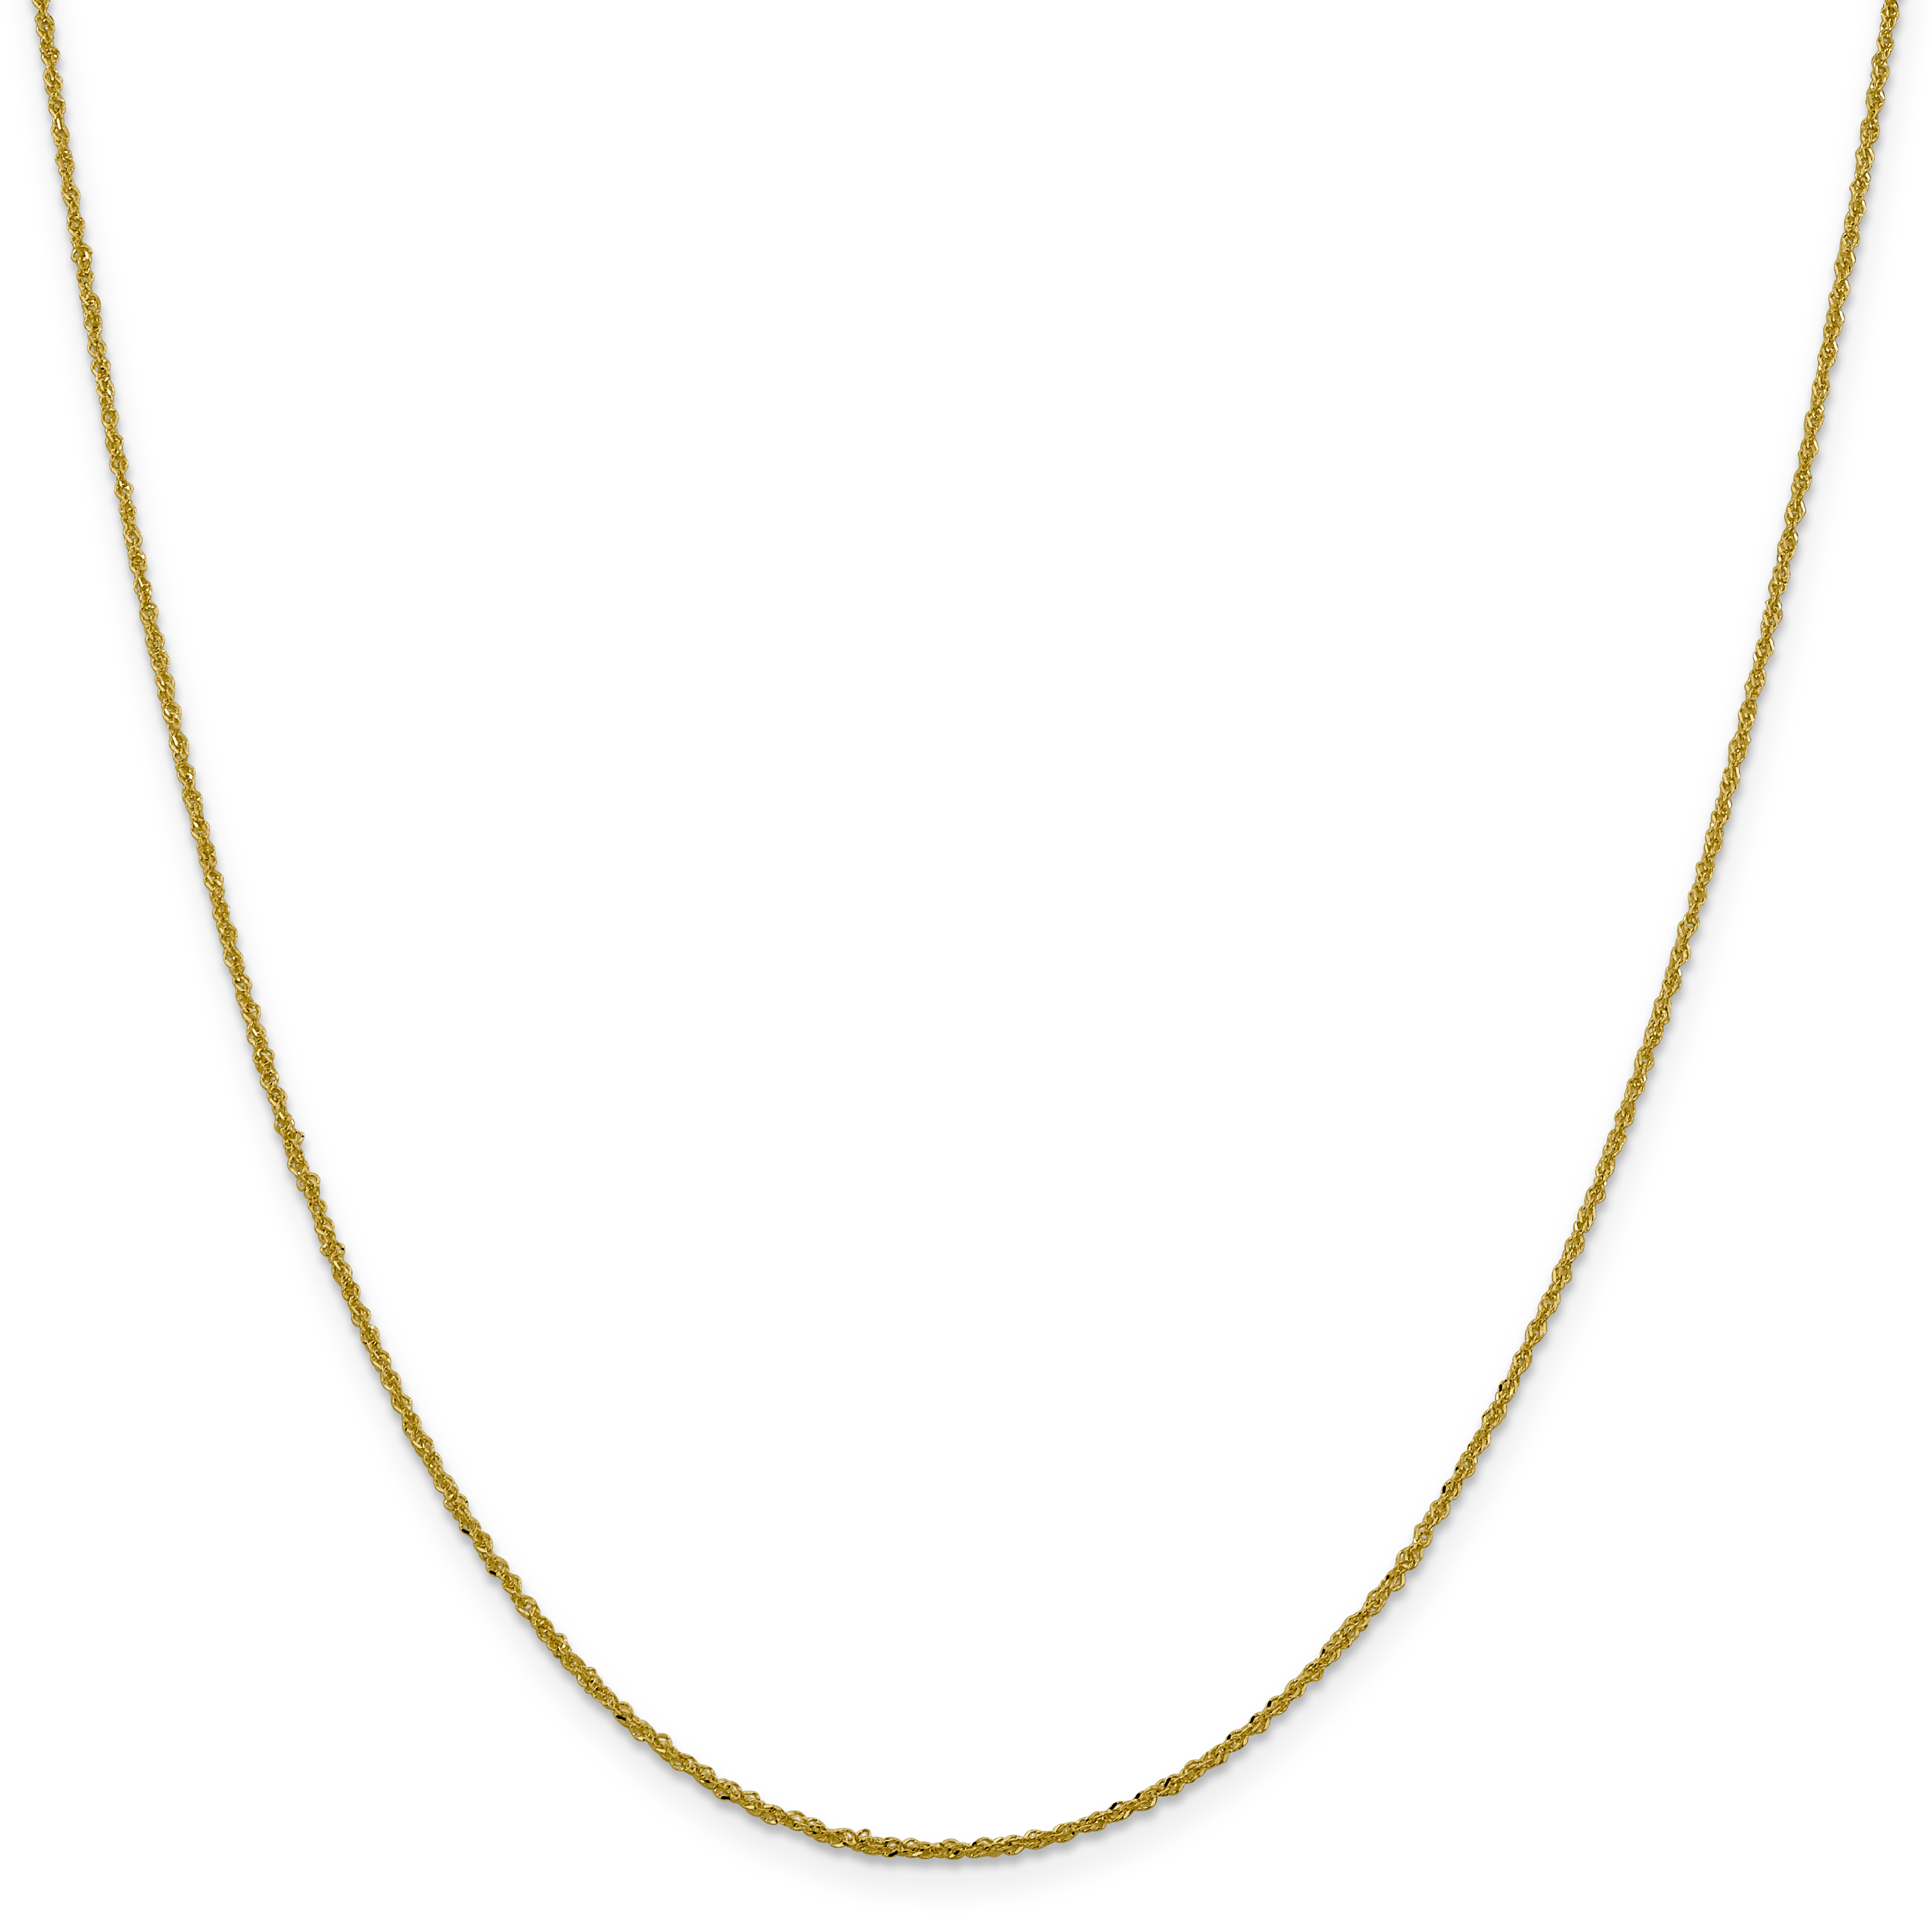 14k Yellow Gold 16in 1.30mm Sparkle Singapore Necklace Chain